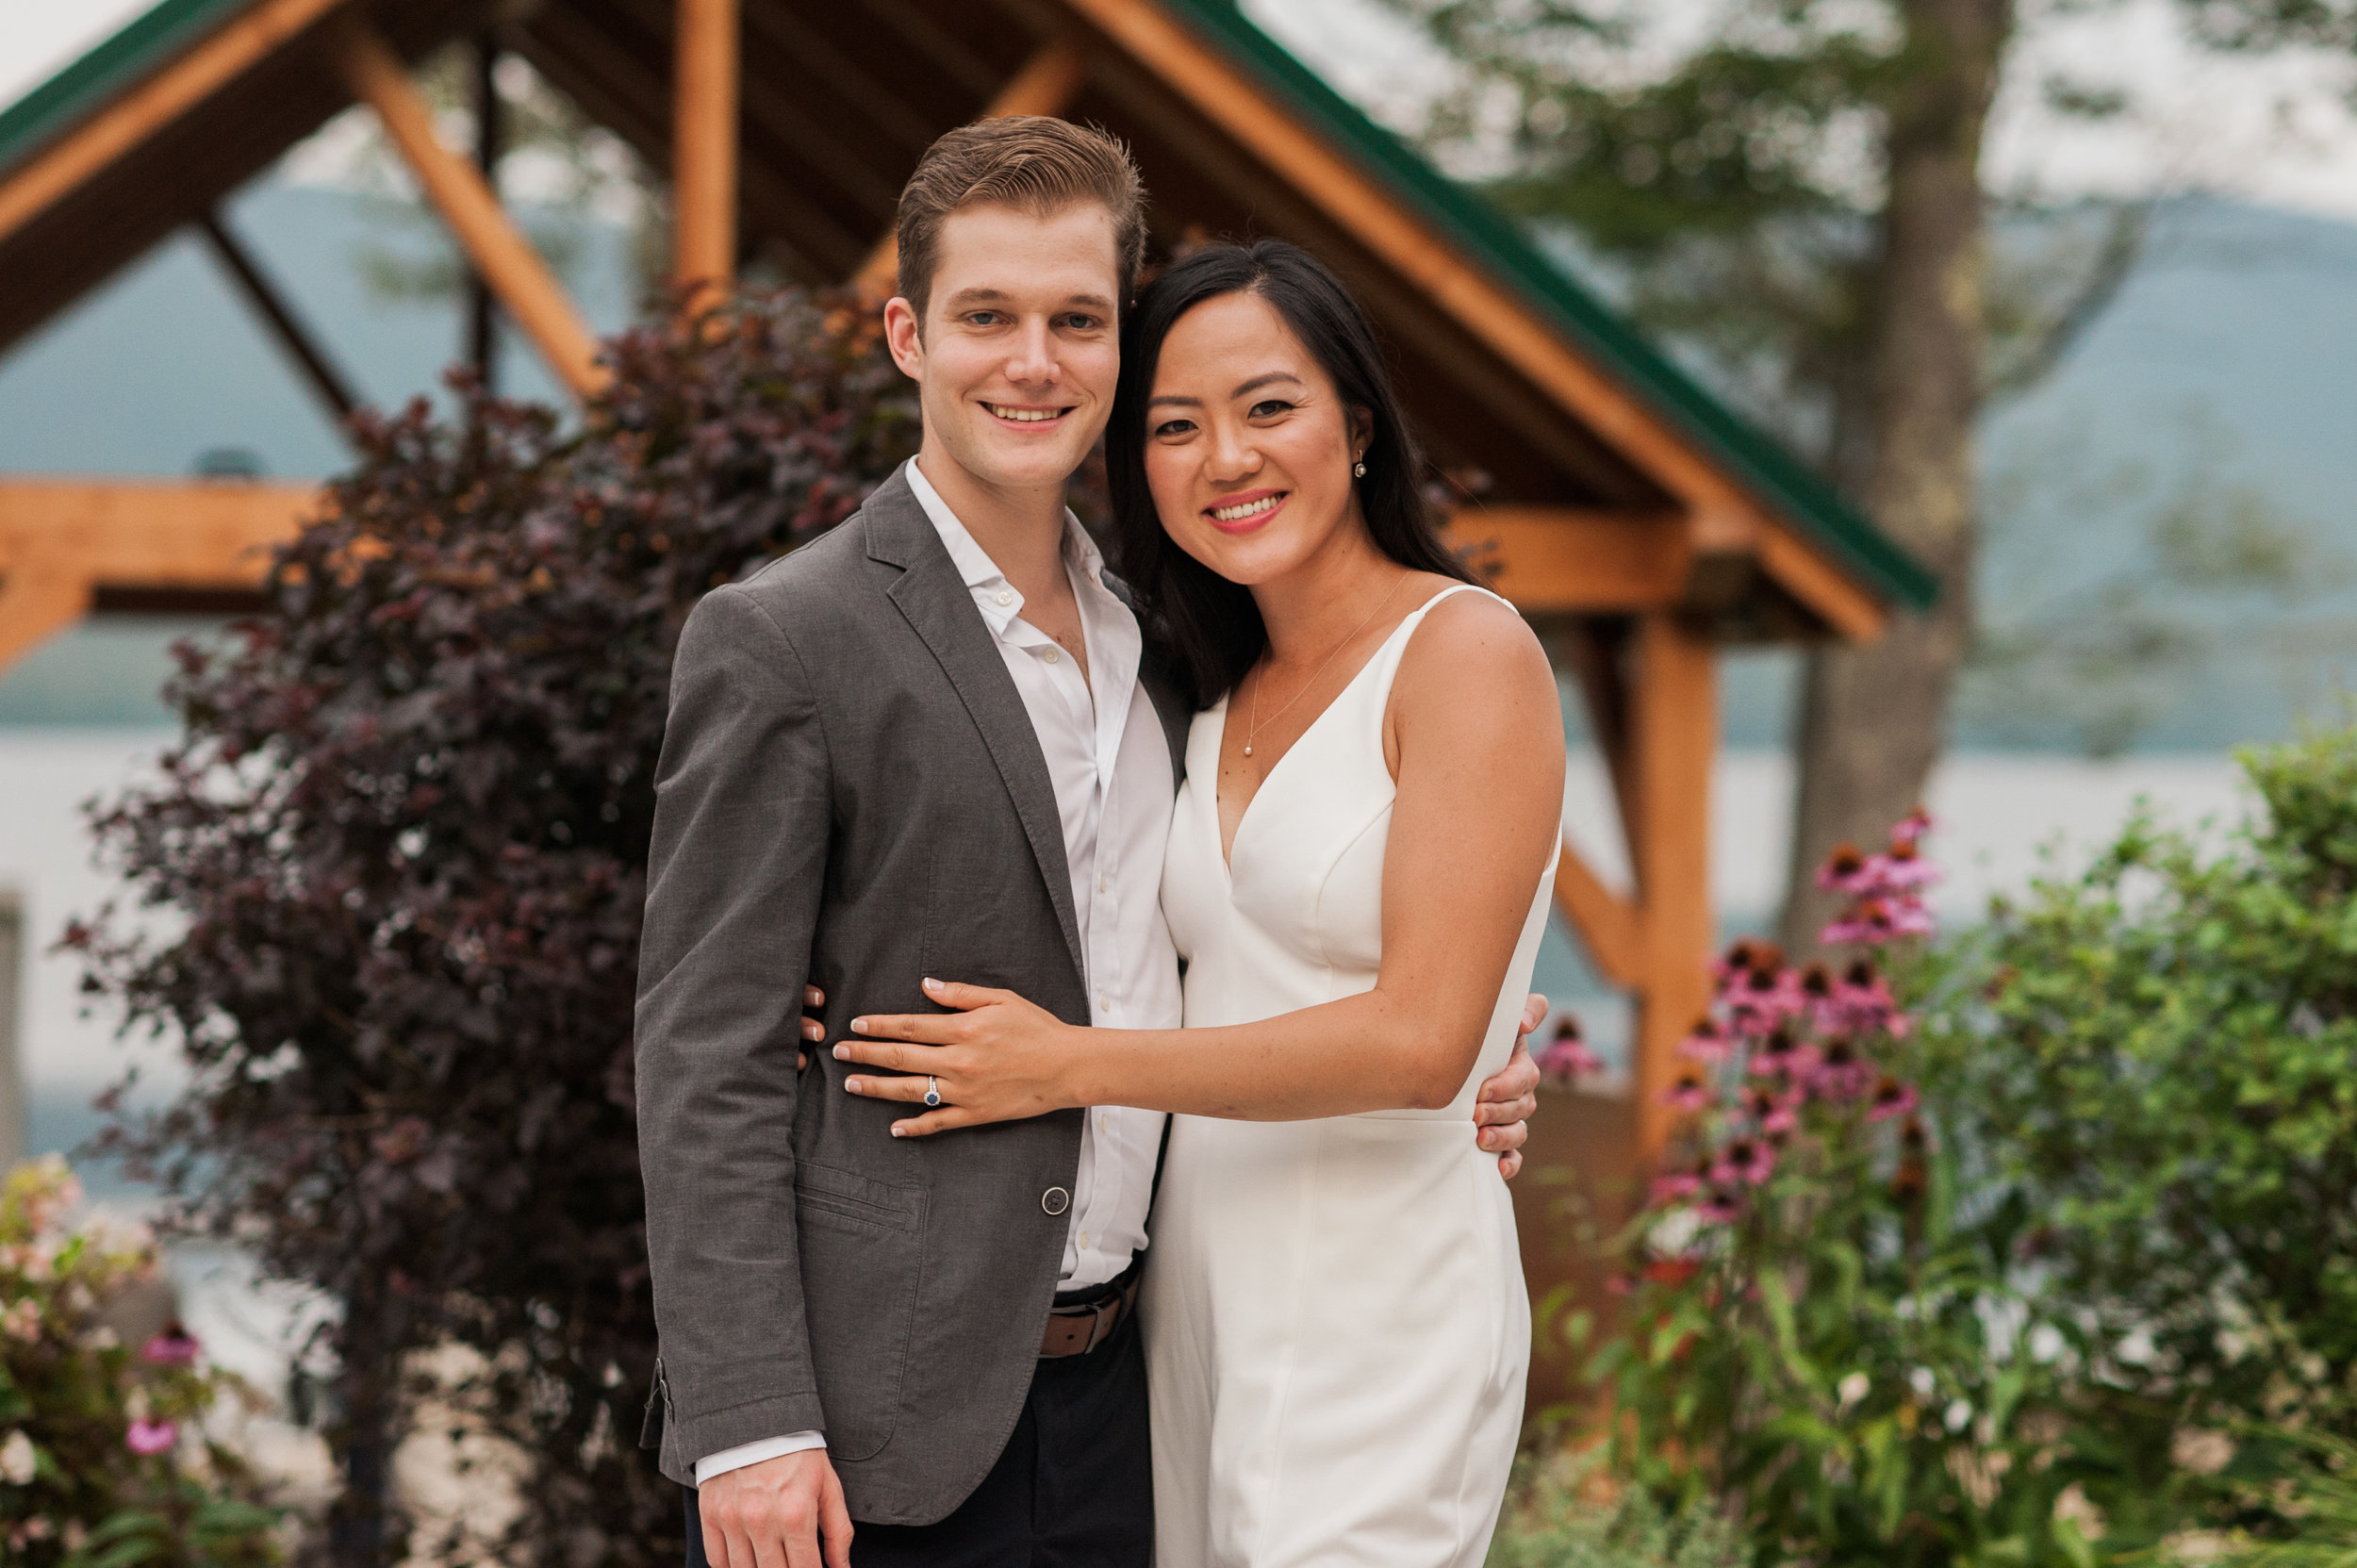 Bride and Groom at the rehearsal dinner at the Pond Pavilion at mountain Top Inn and Resort photographed by Idena Beach, Vermont wedding photographer